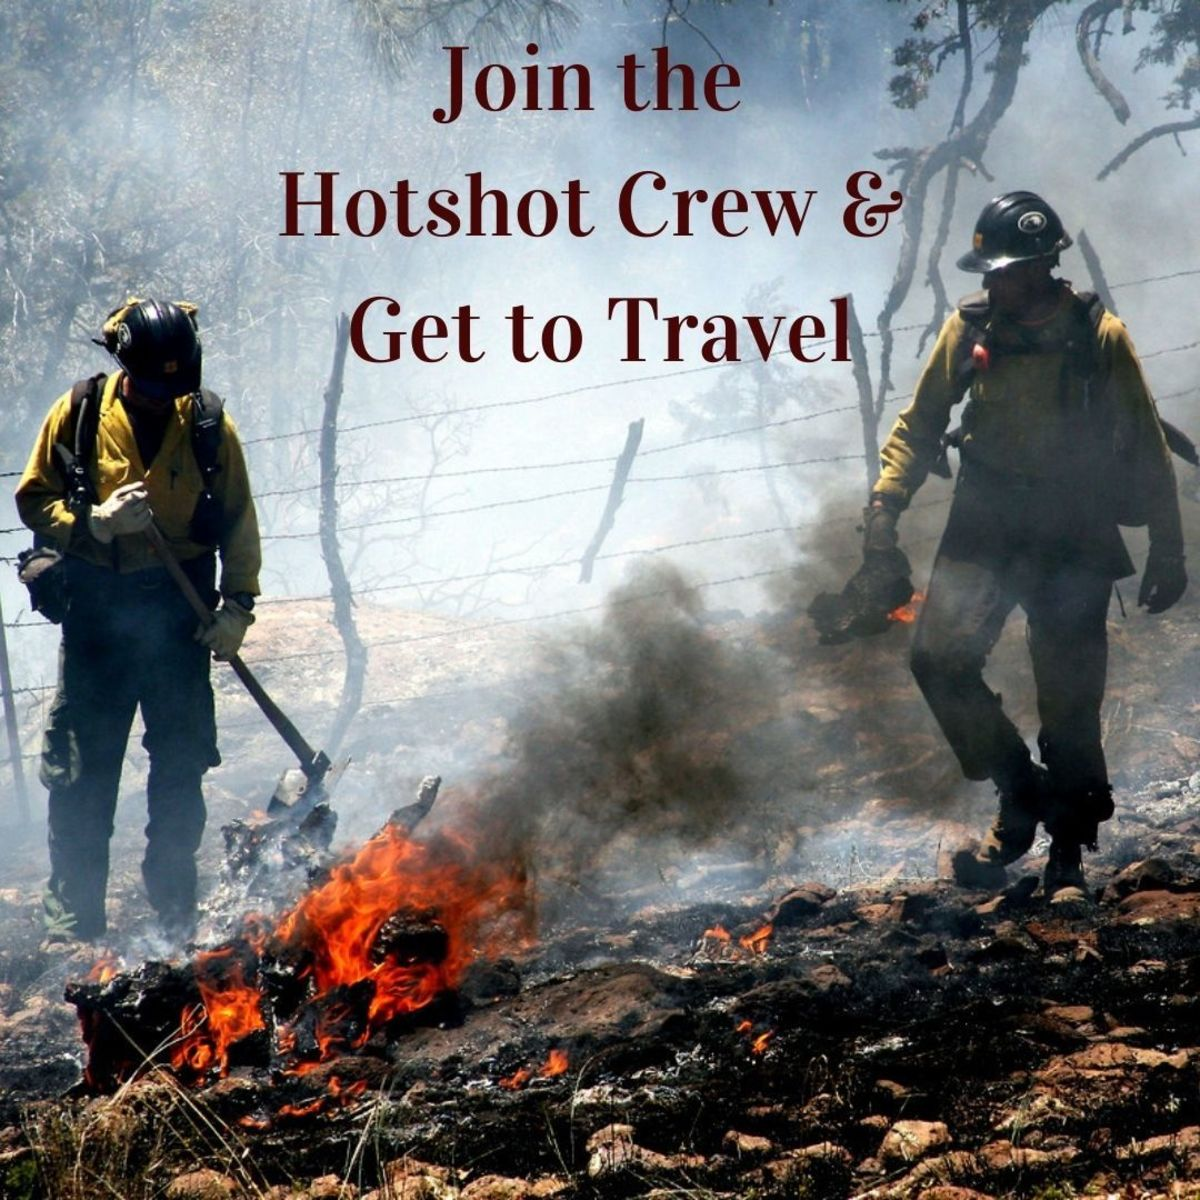 Hotshot crew members from the U.S. Forest Service, South-western Region, Kaibab National Forest.